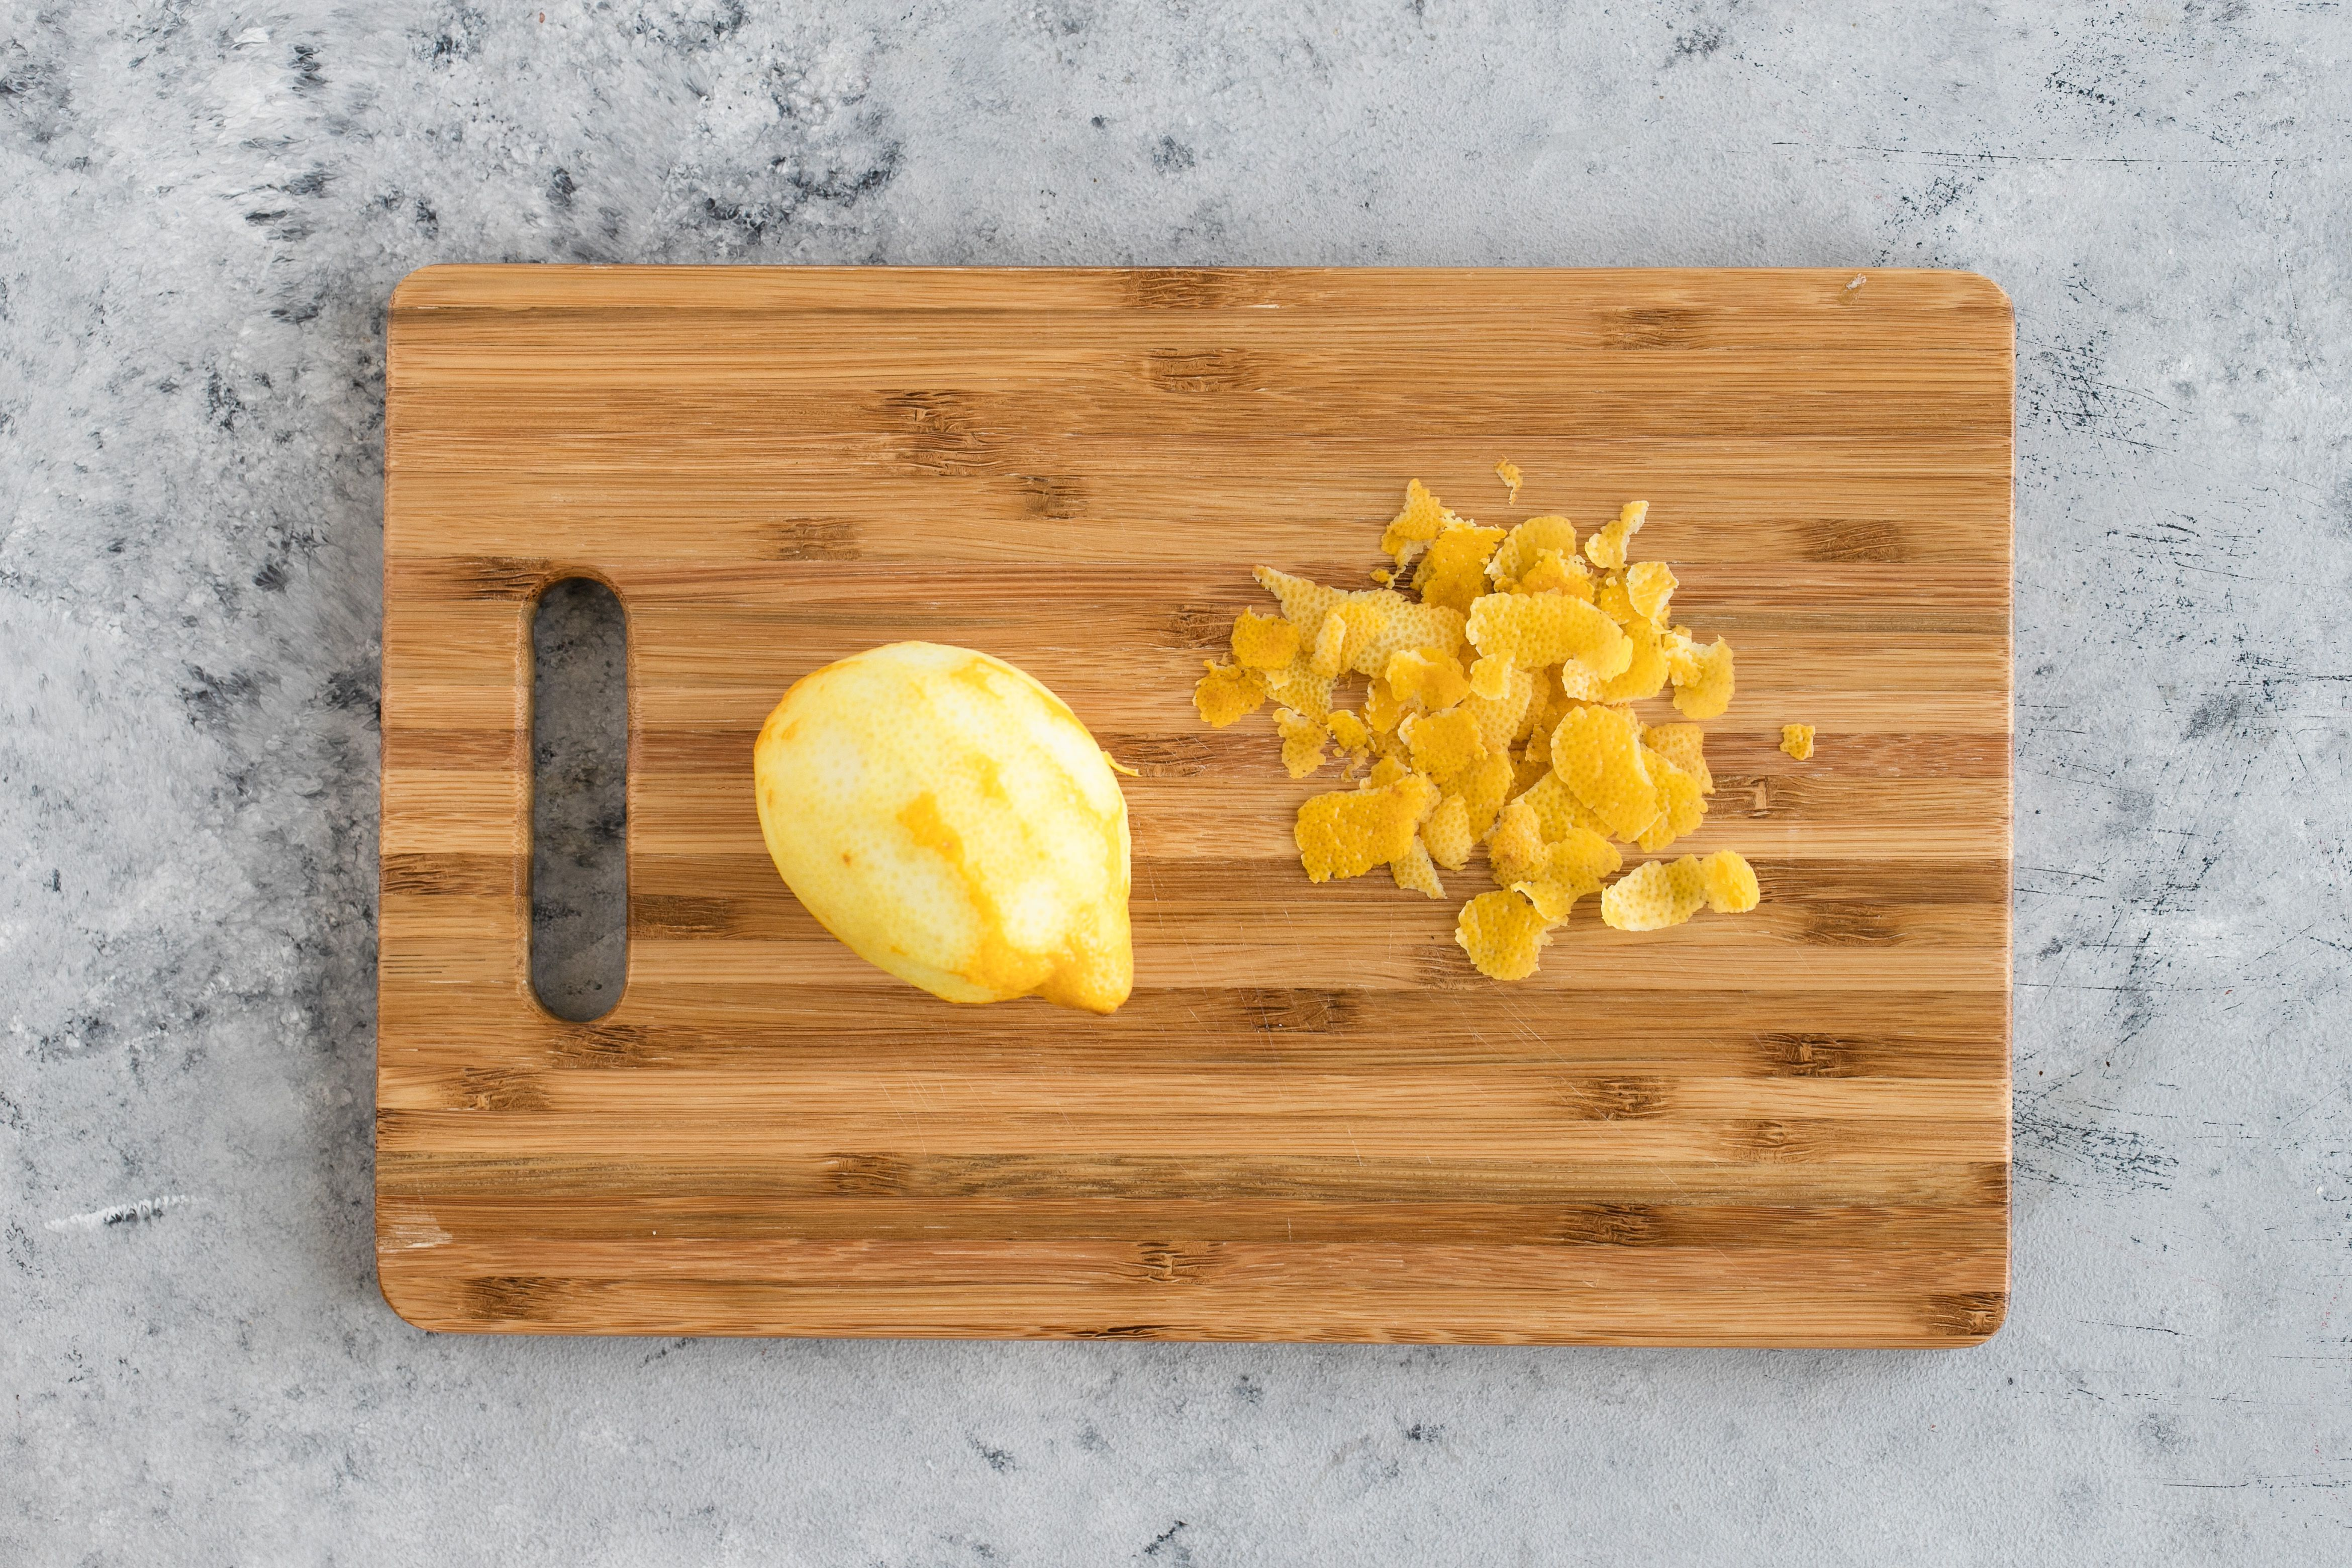 A zested lemon on a wooden cutting board